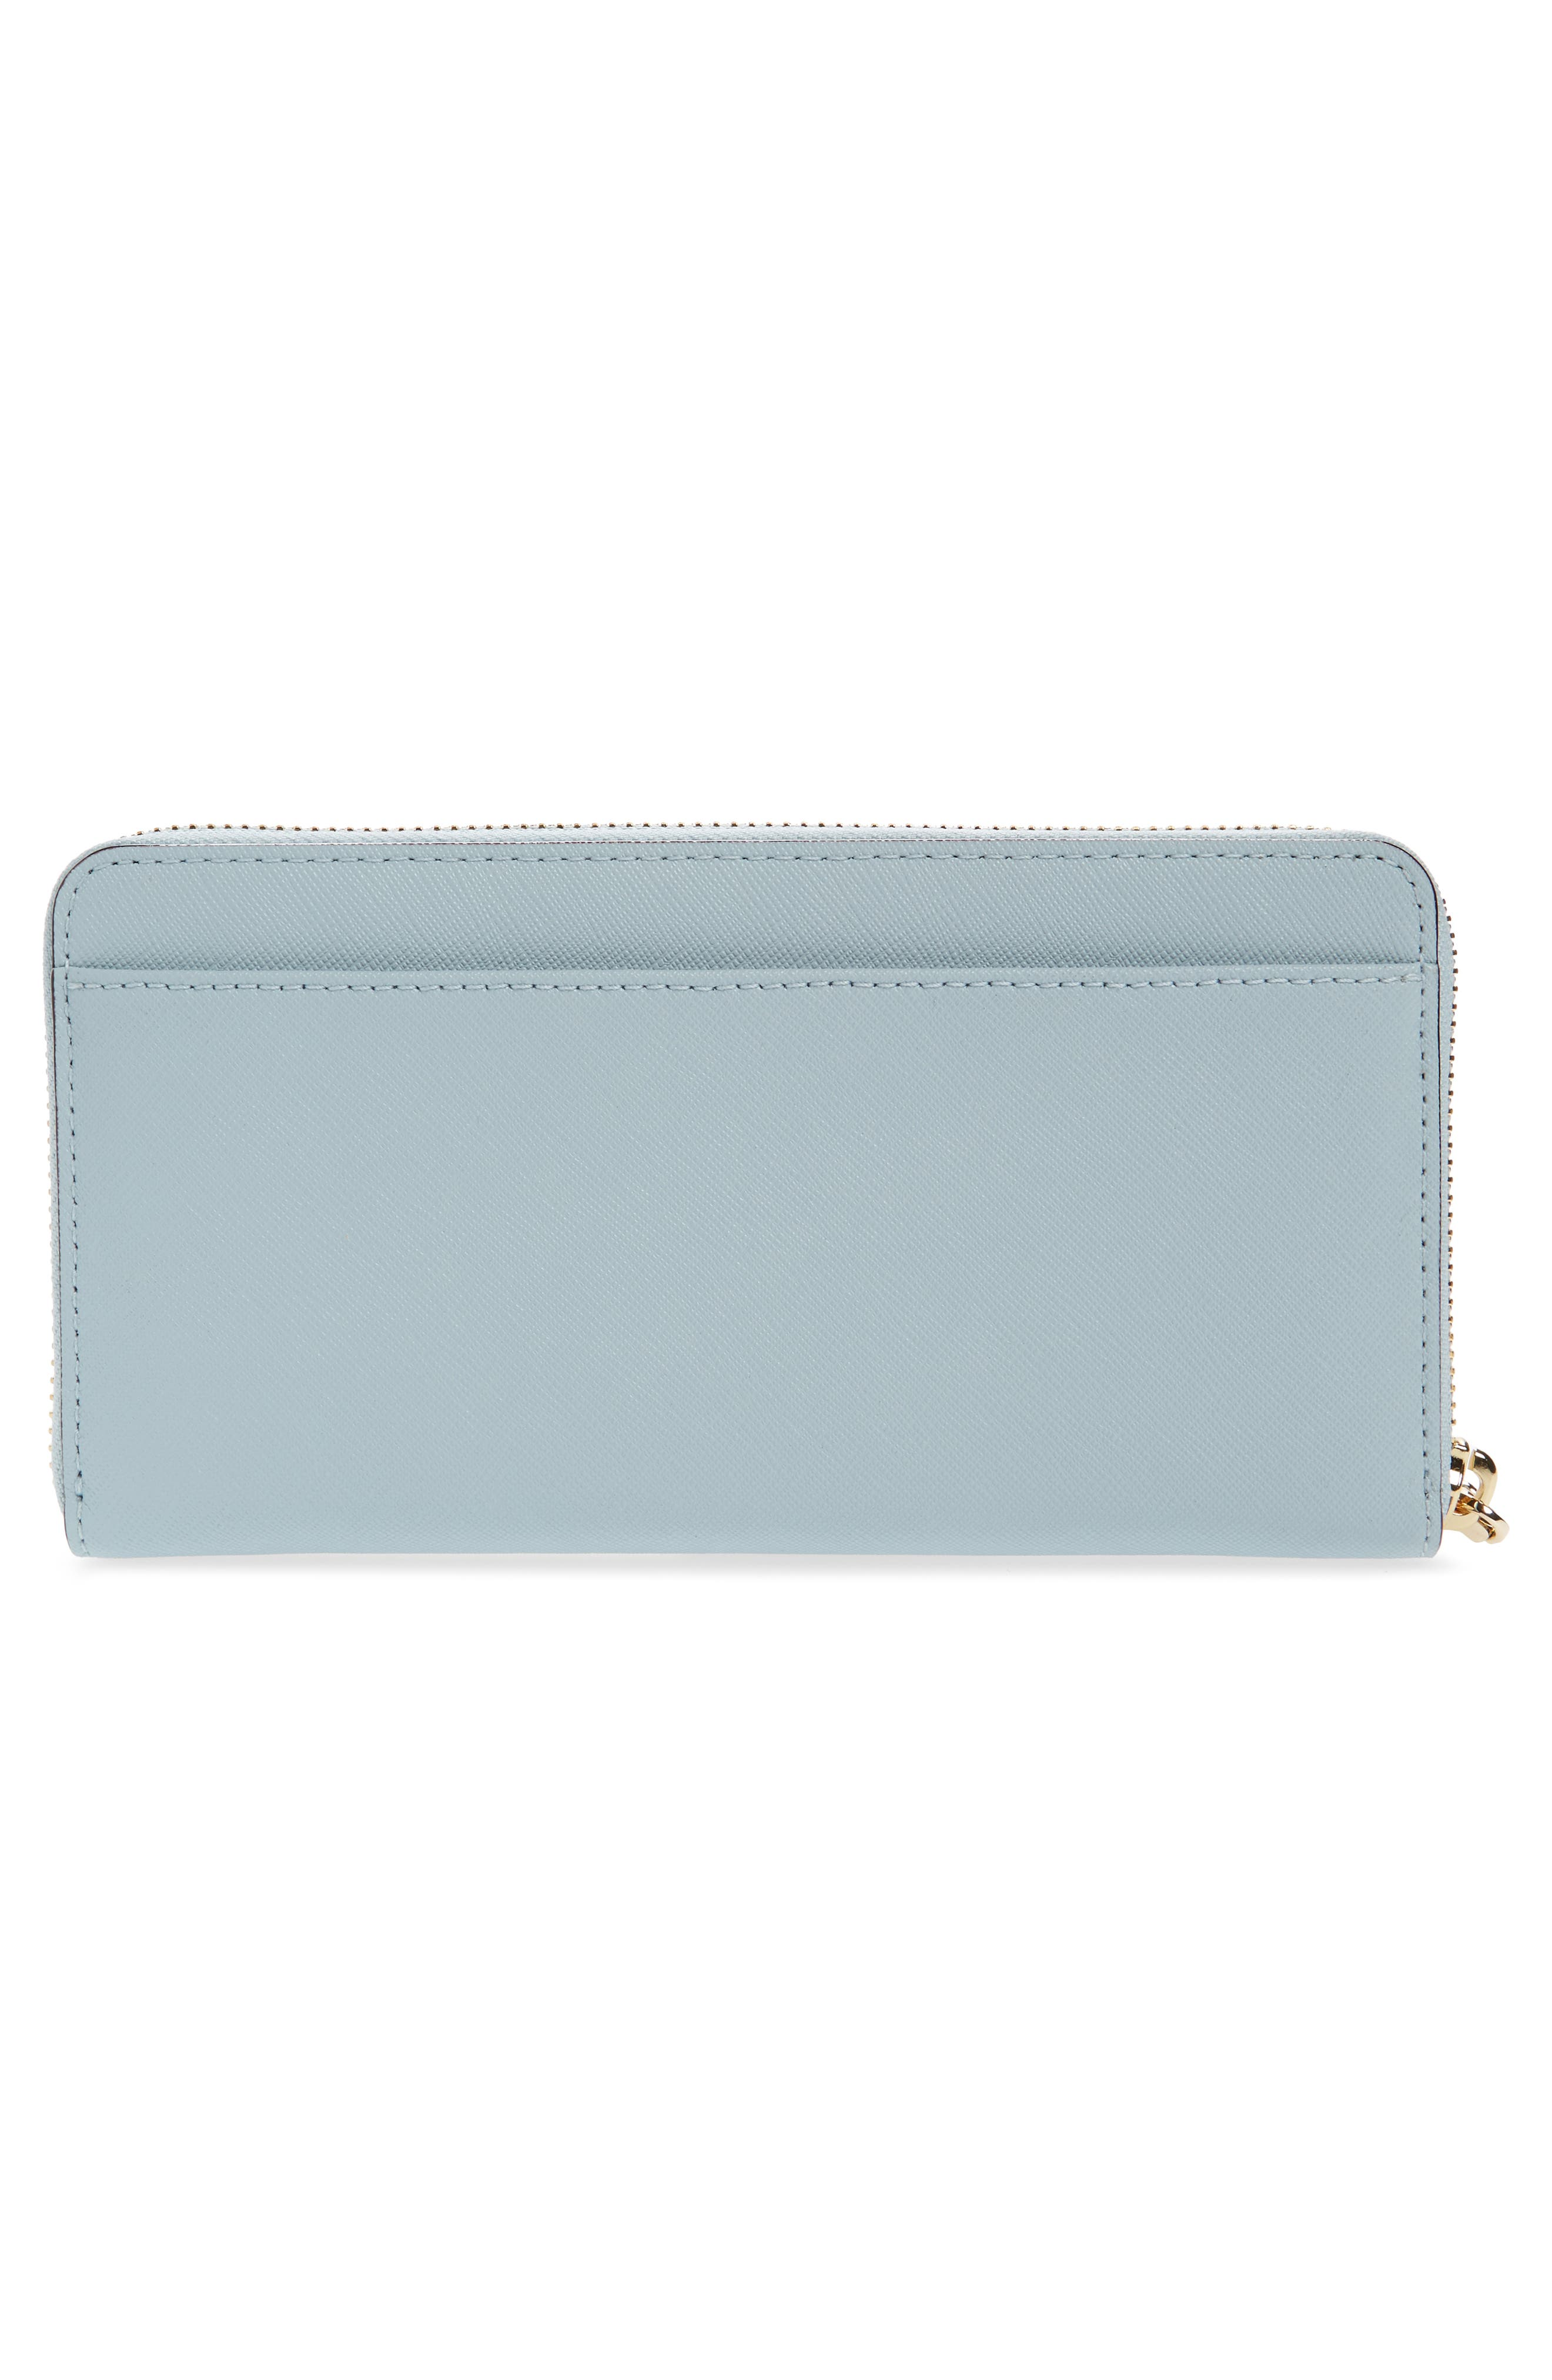 'cameron street - lacey' leather wallet,                             Alternate thumbnail 42, color,